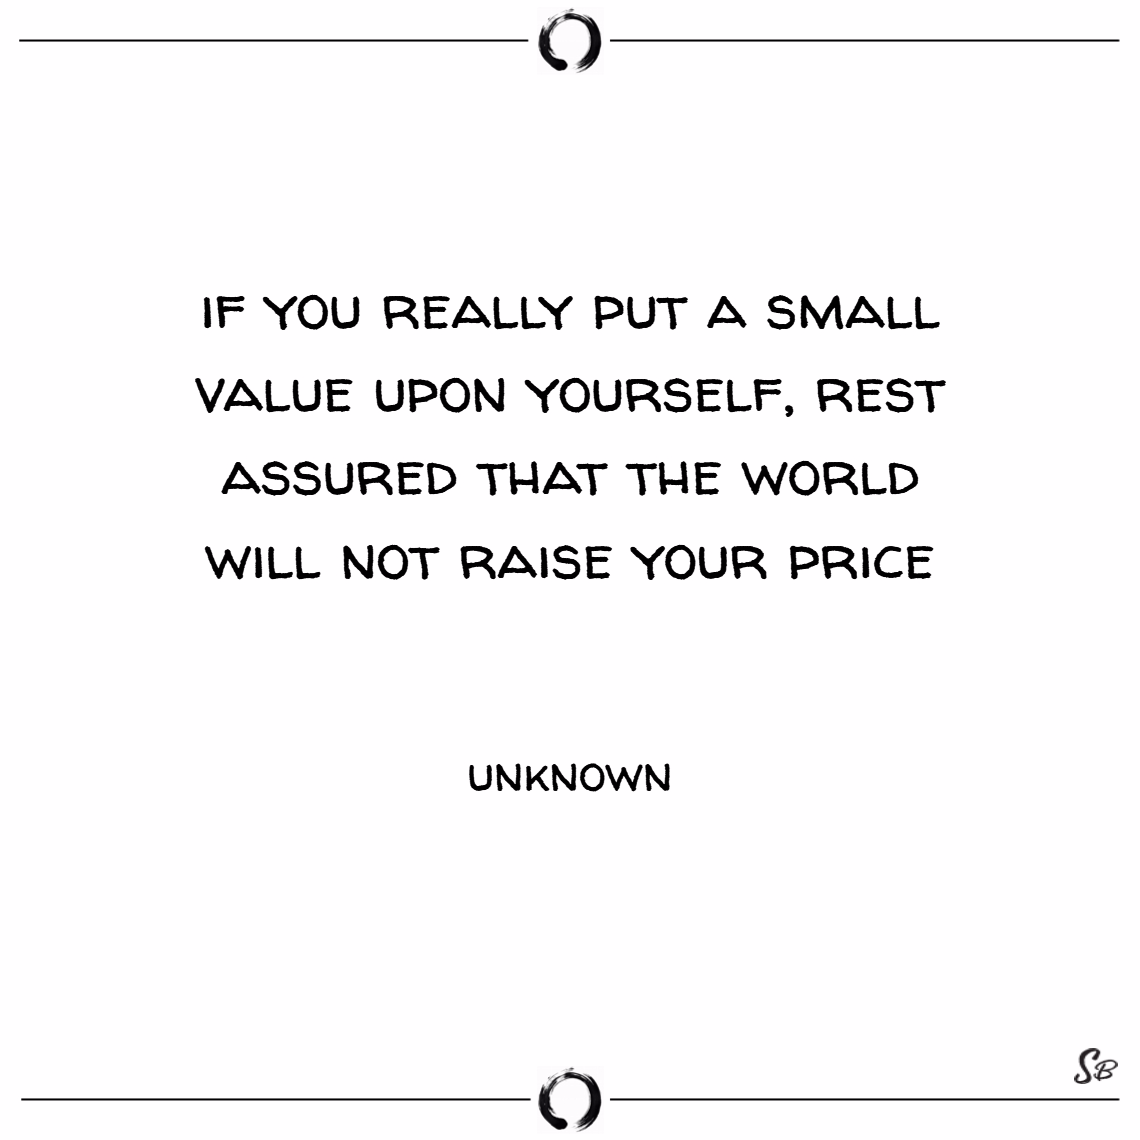 If you really put a small value upon yourself, rest assured that the world will not raise your price. – unknown